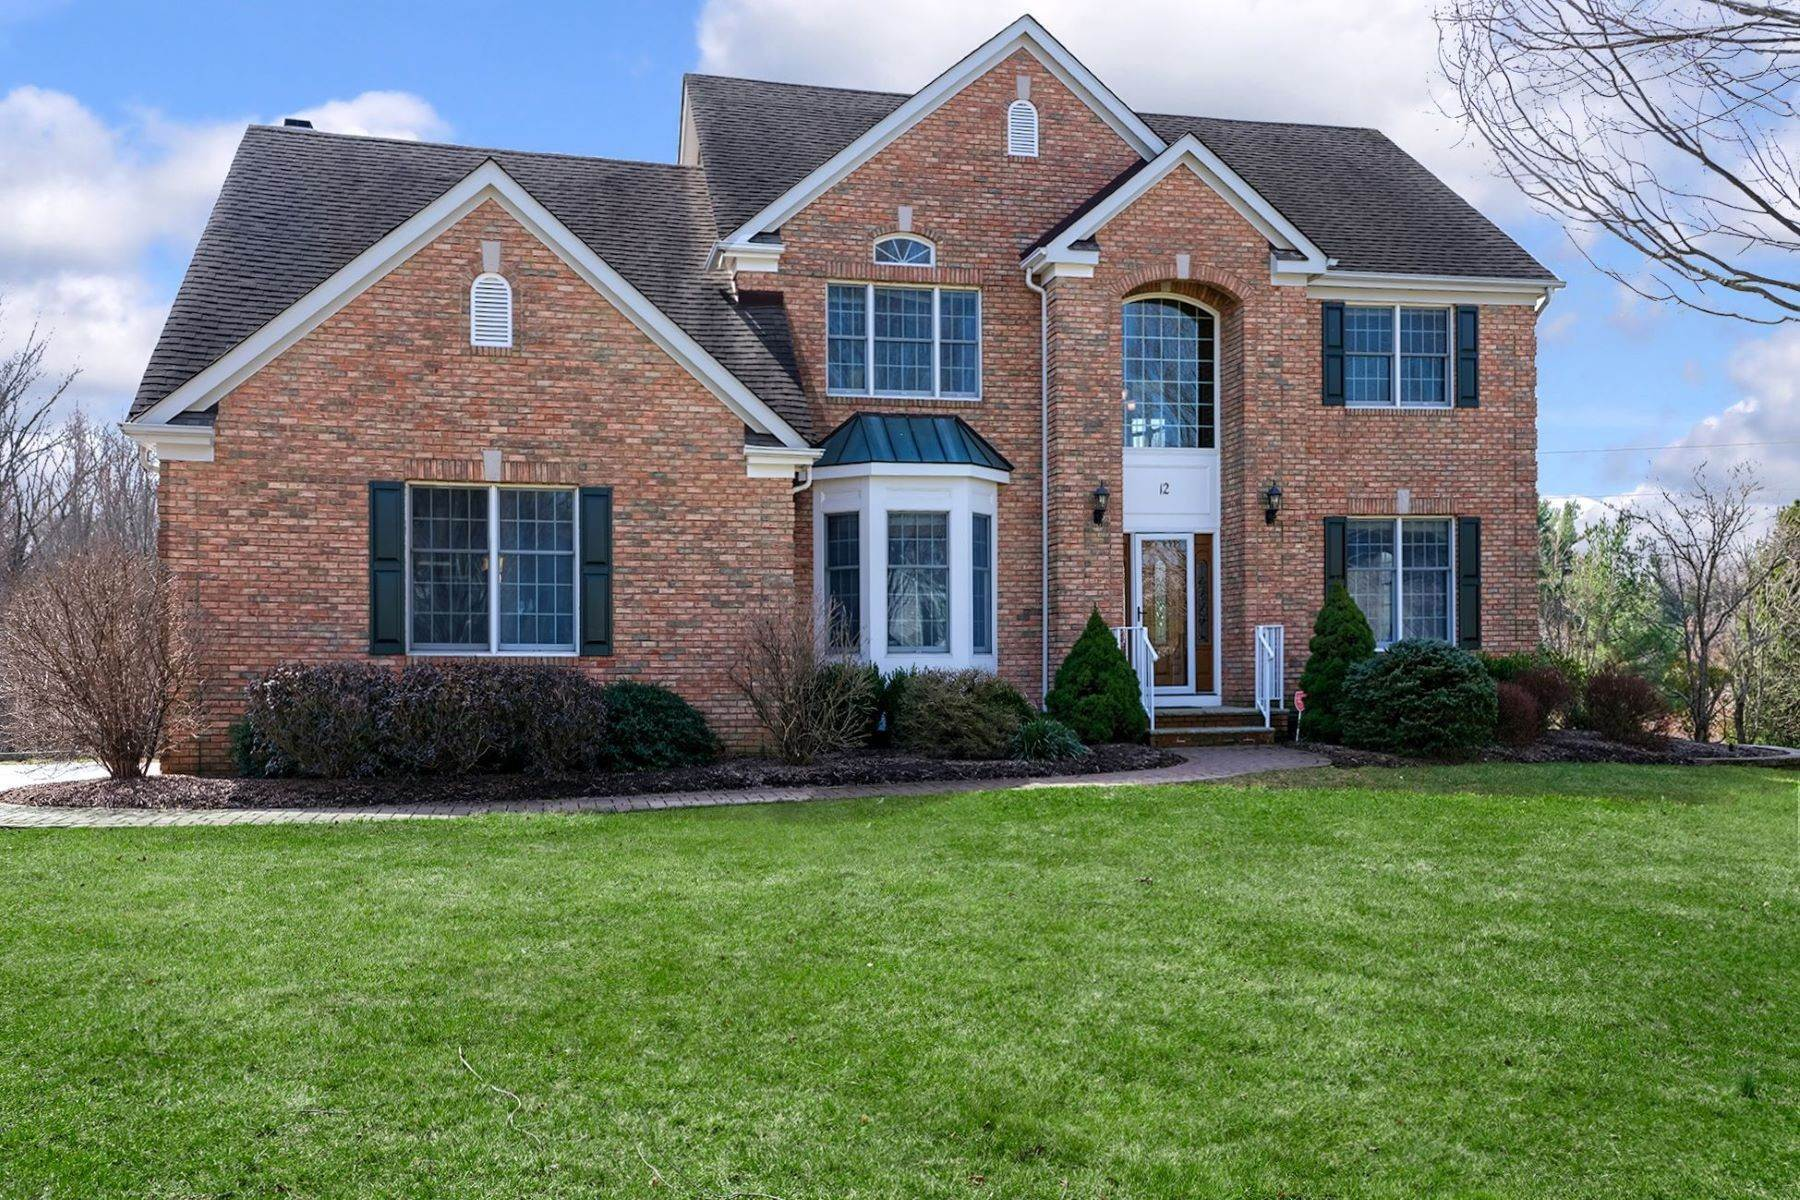 Single Family Homes for Sale at An Entertainer's Floor Plan 12 Regents Court, Belle Mead, New Jersey 08502 United States